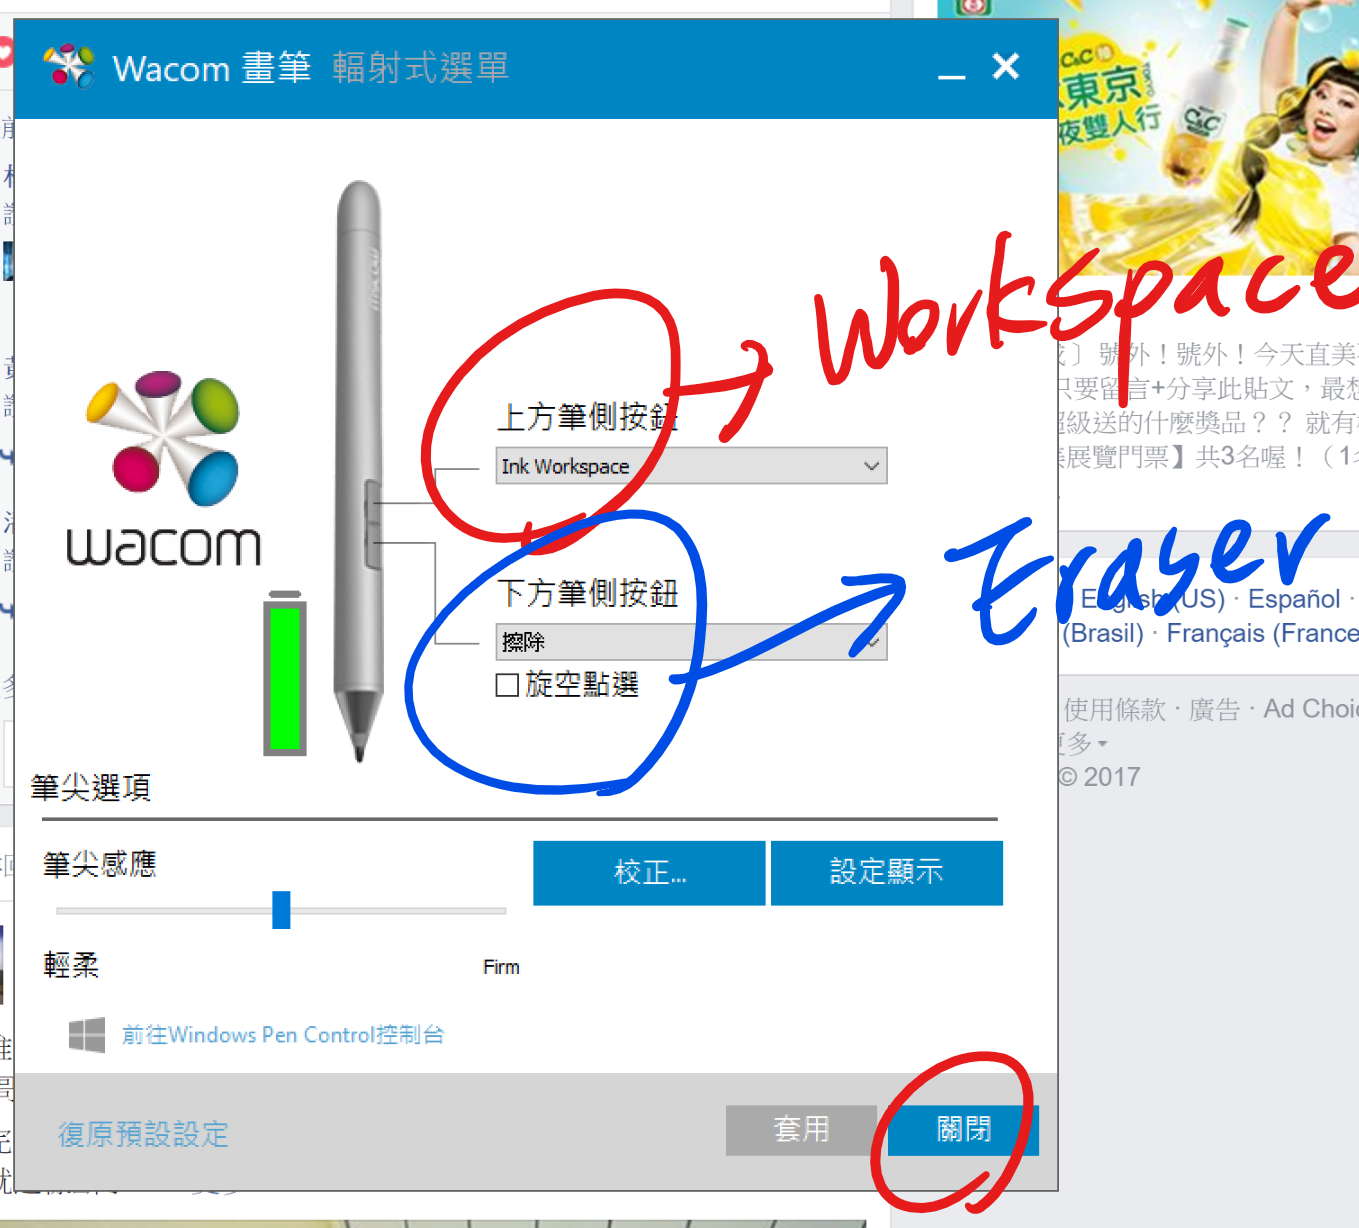 Wacom觸控技術 Lenovo 2in1 Miix720 開箱 - XFastest - image17.png